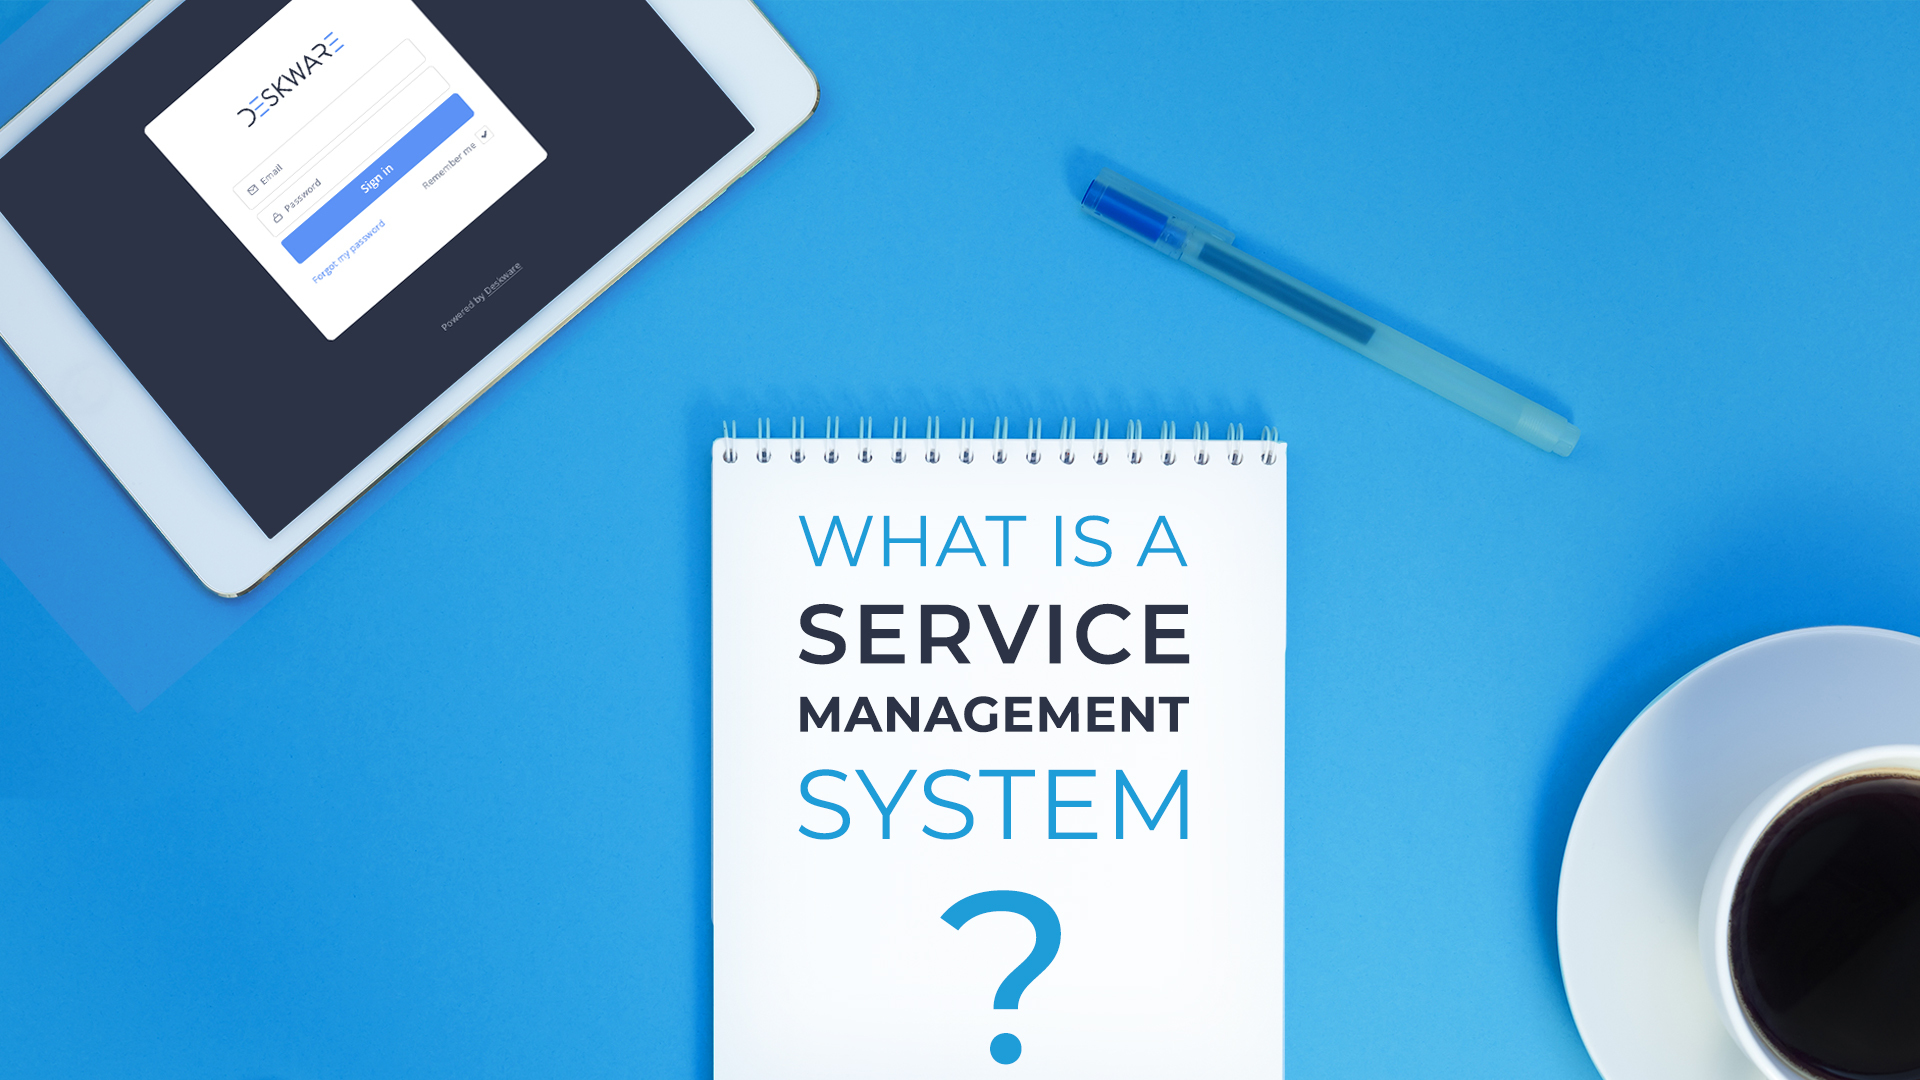 What Is a Service Management System?